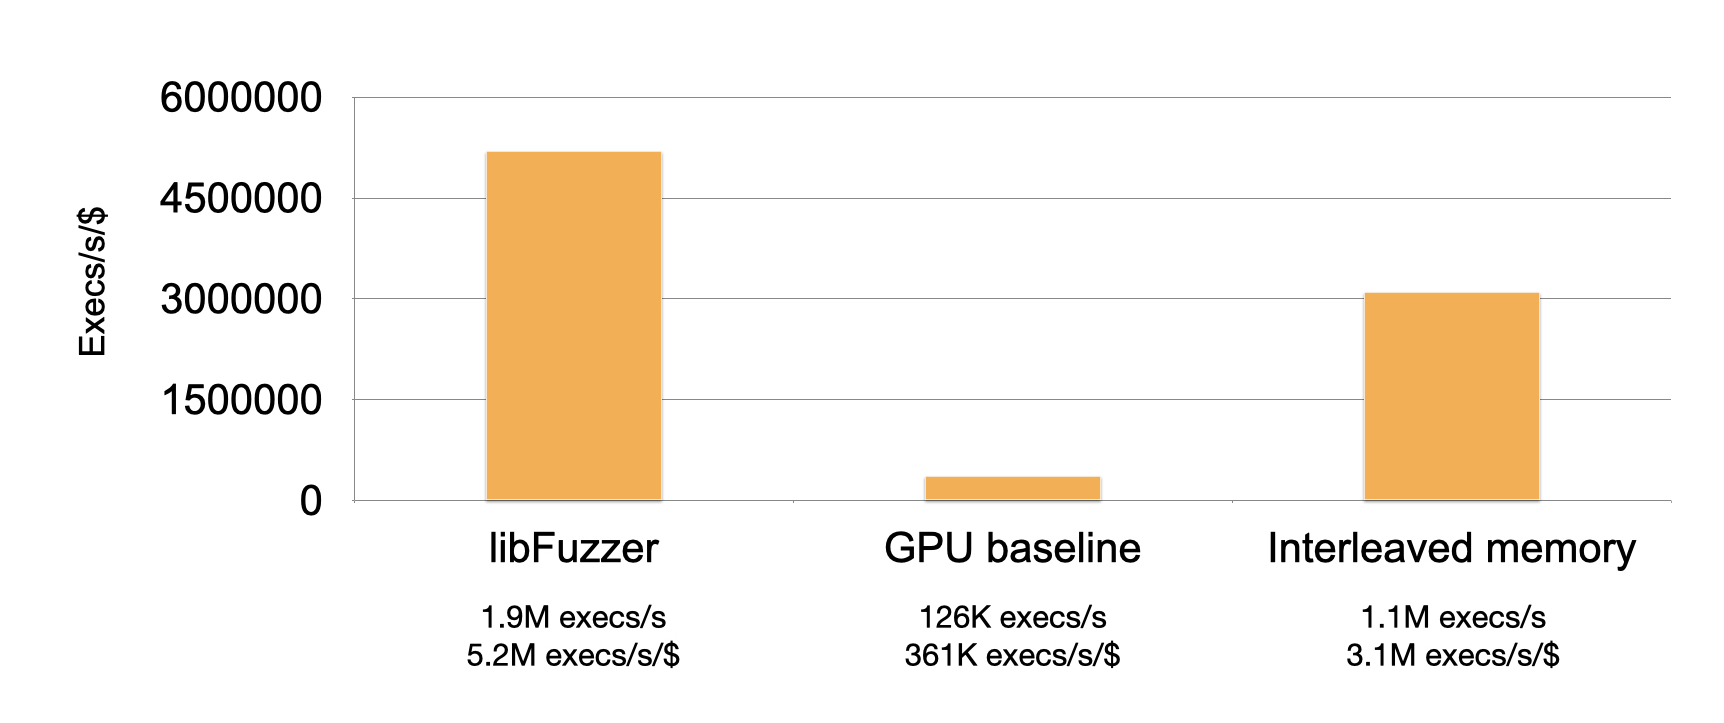 By applying this single optimization, performance improves by an order of magnitude, from 126K execs/s to 1.1M execs/s. This still does not match libfuzzer in executions per second per dollar, but it reaches much closer.